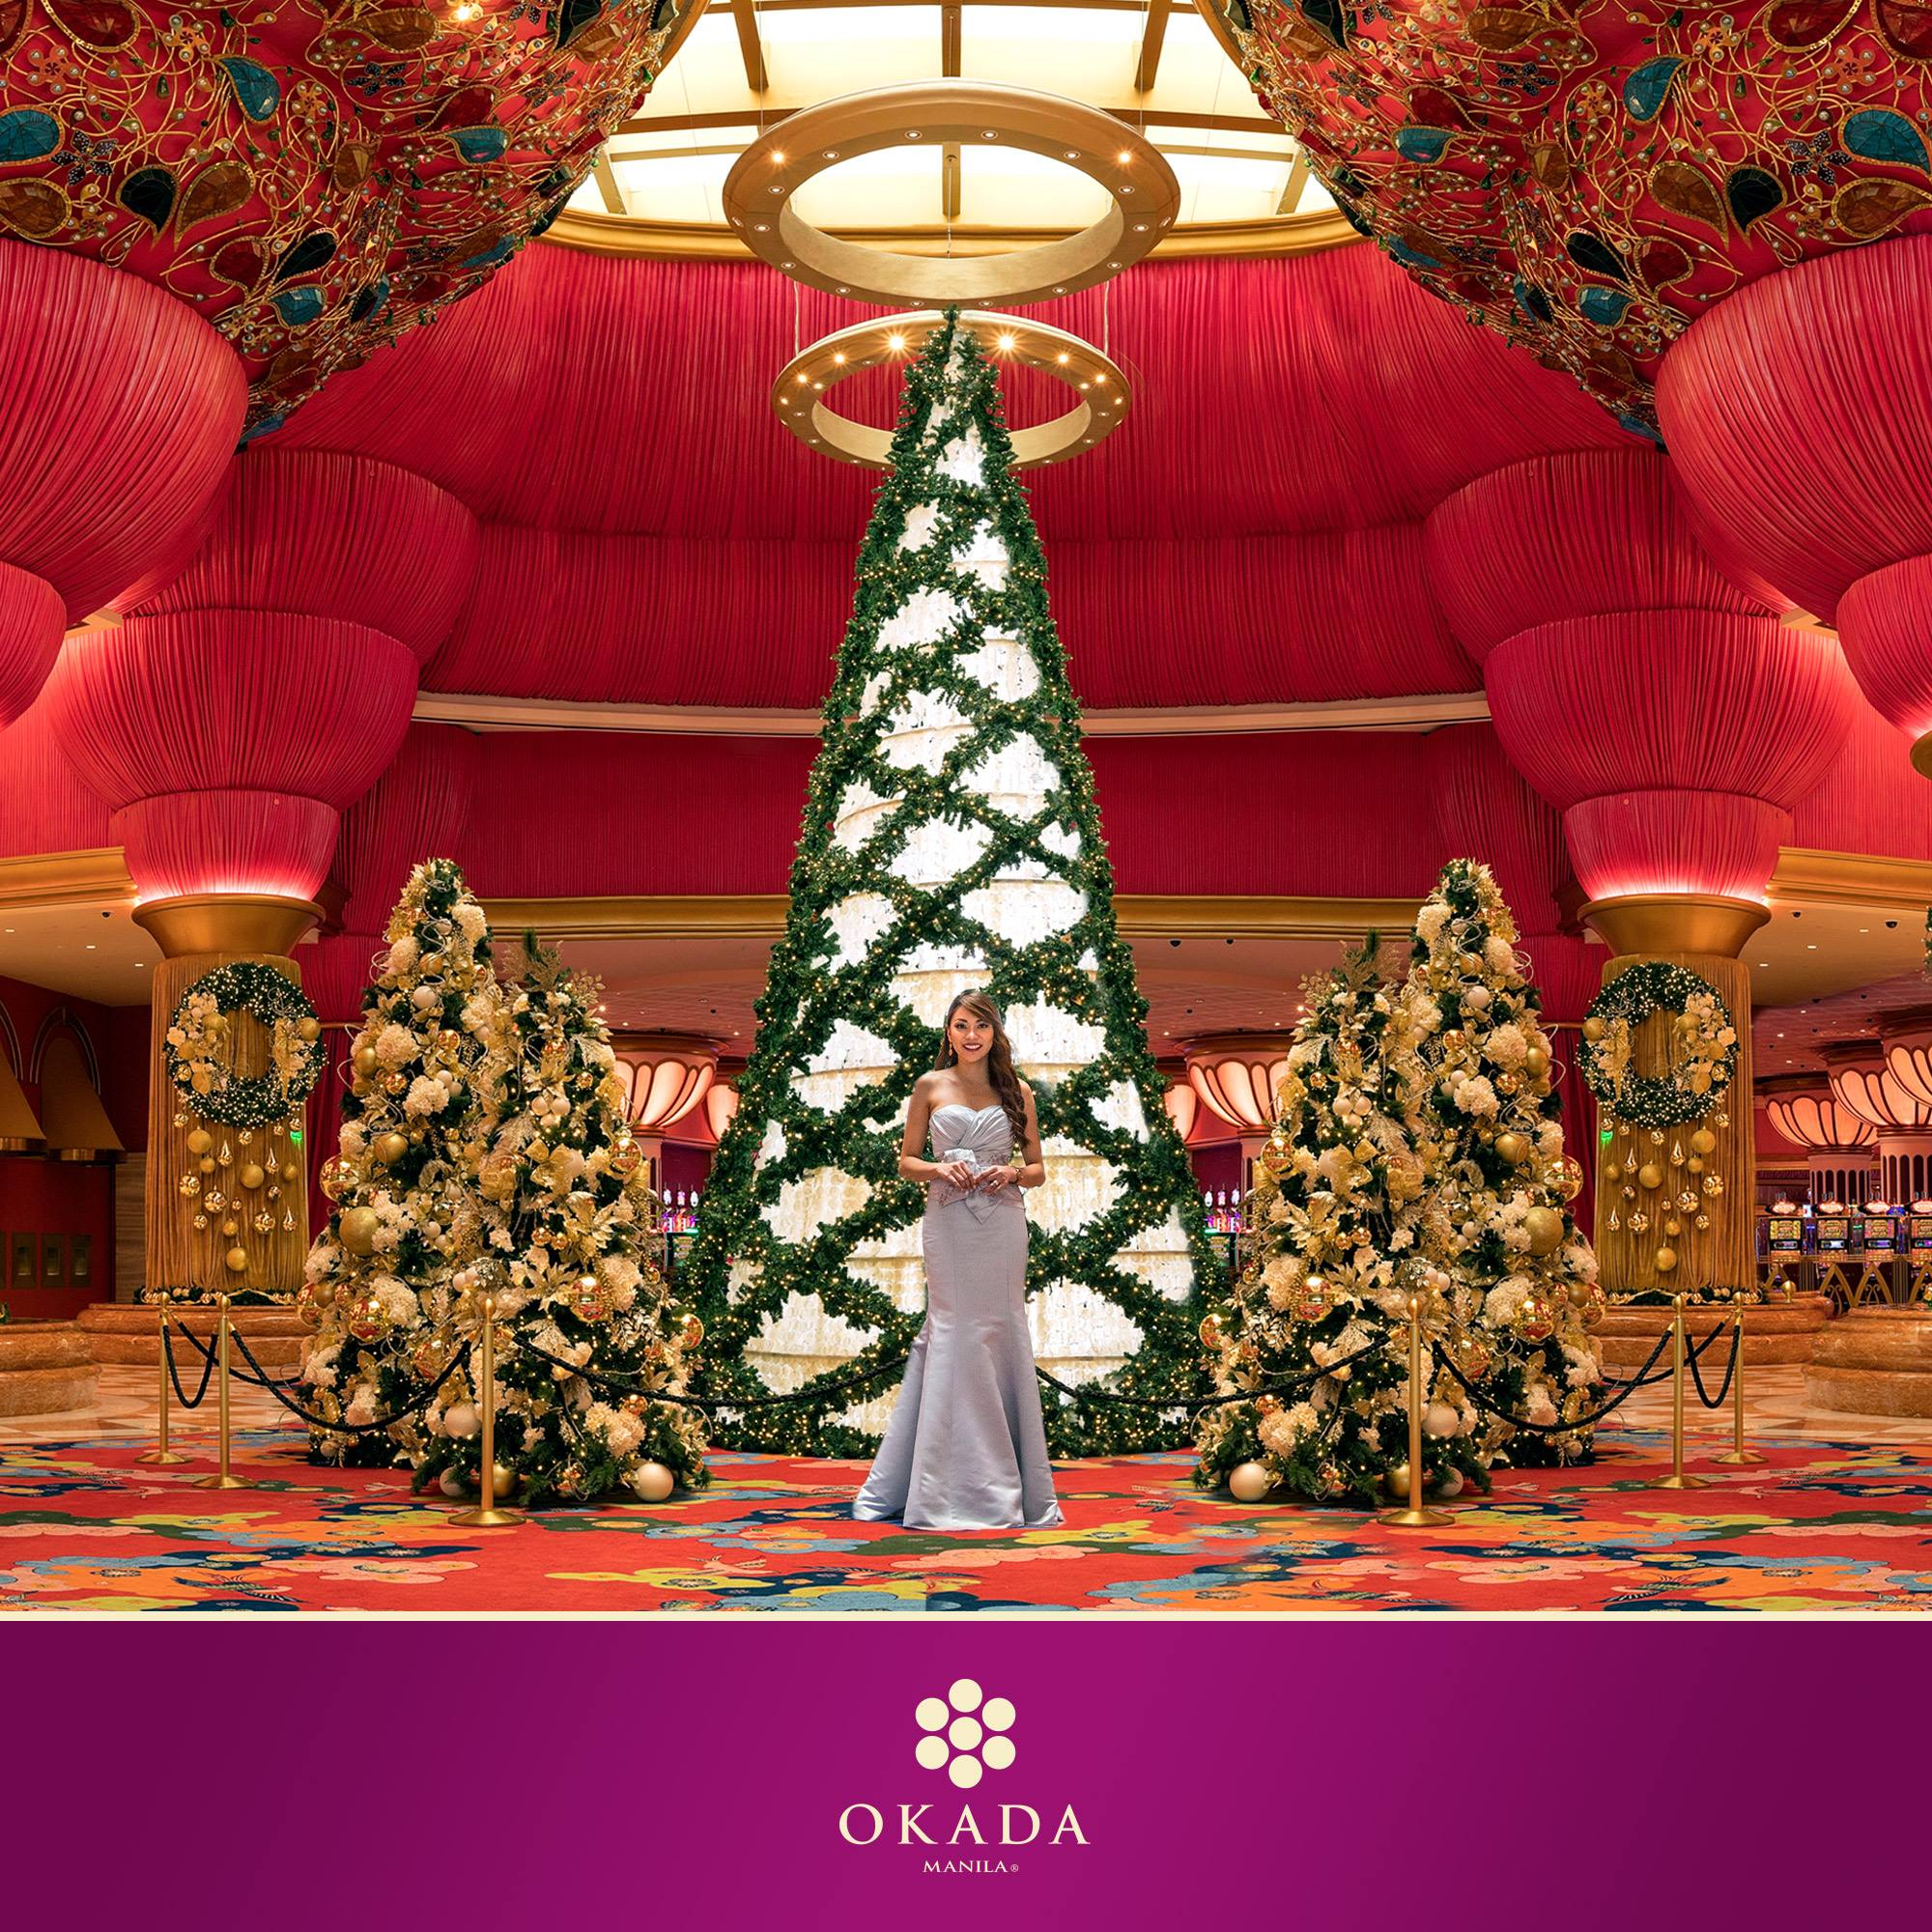 IN PHOTOS: 10 Christmas Trees In Manila That Will Put You